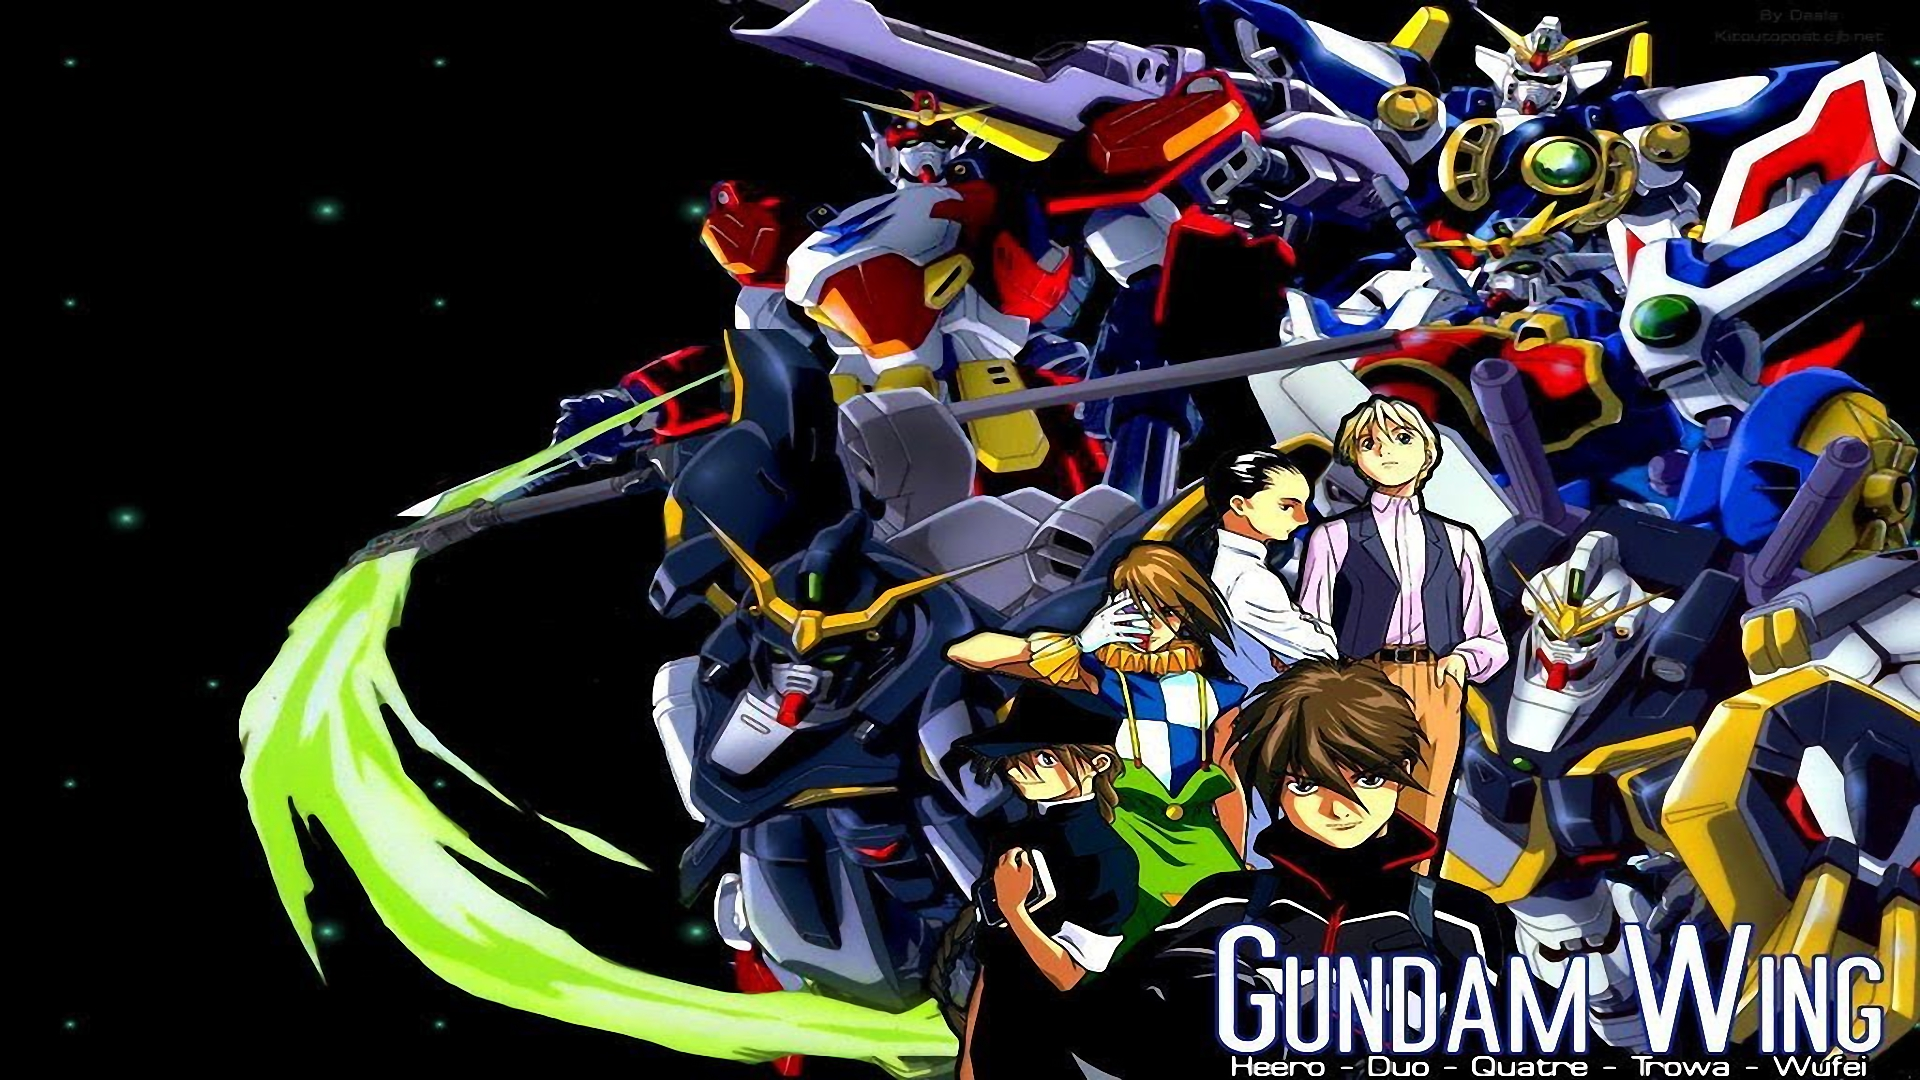 3 gundam wing endless duel hd wallpapers backgrounds